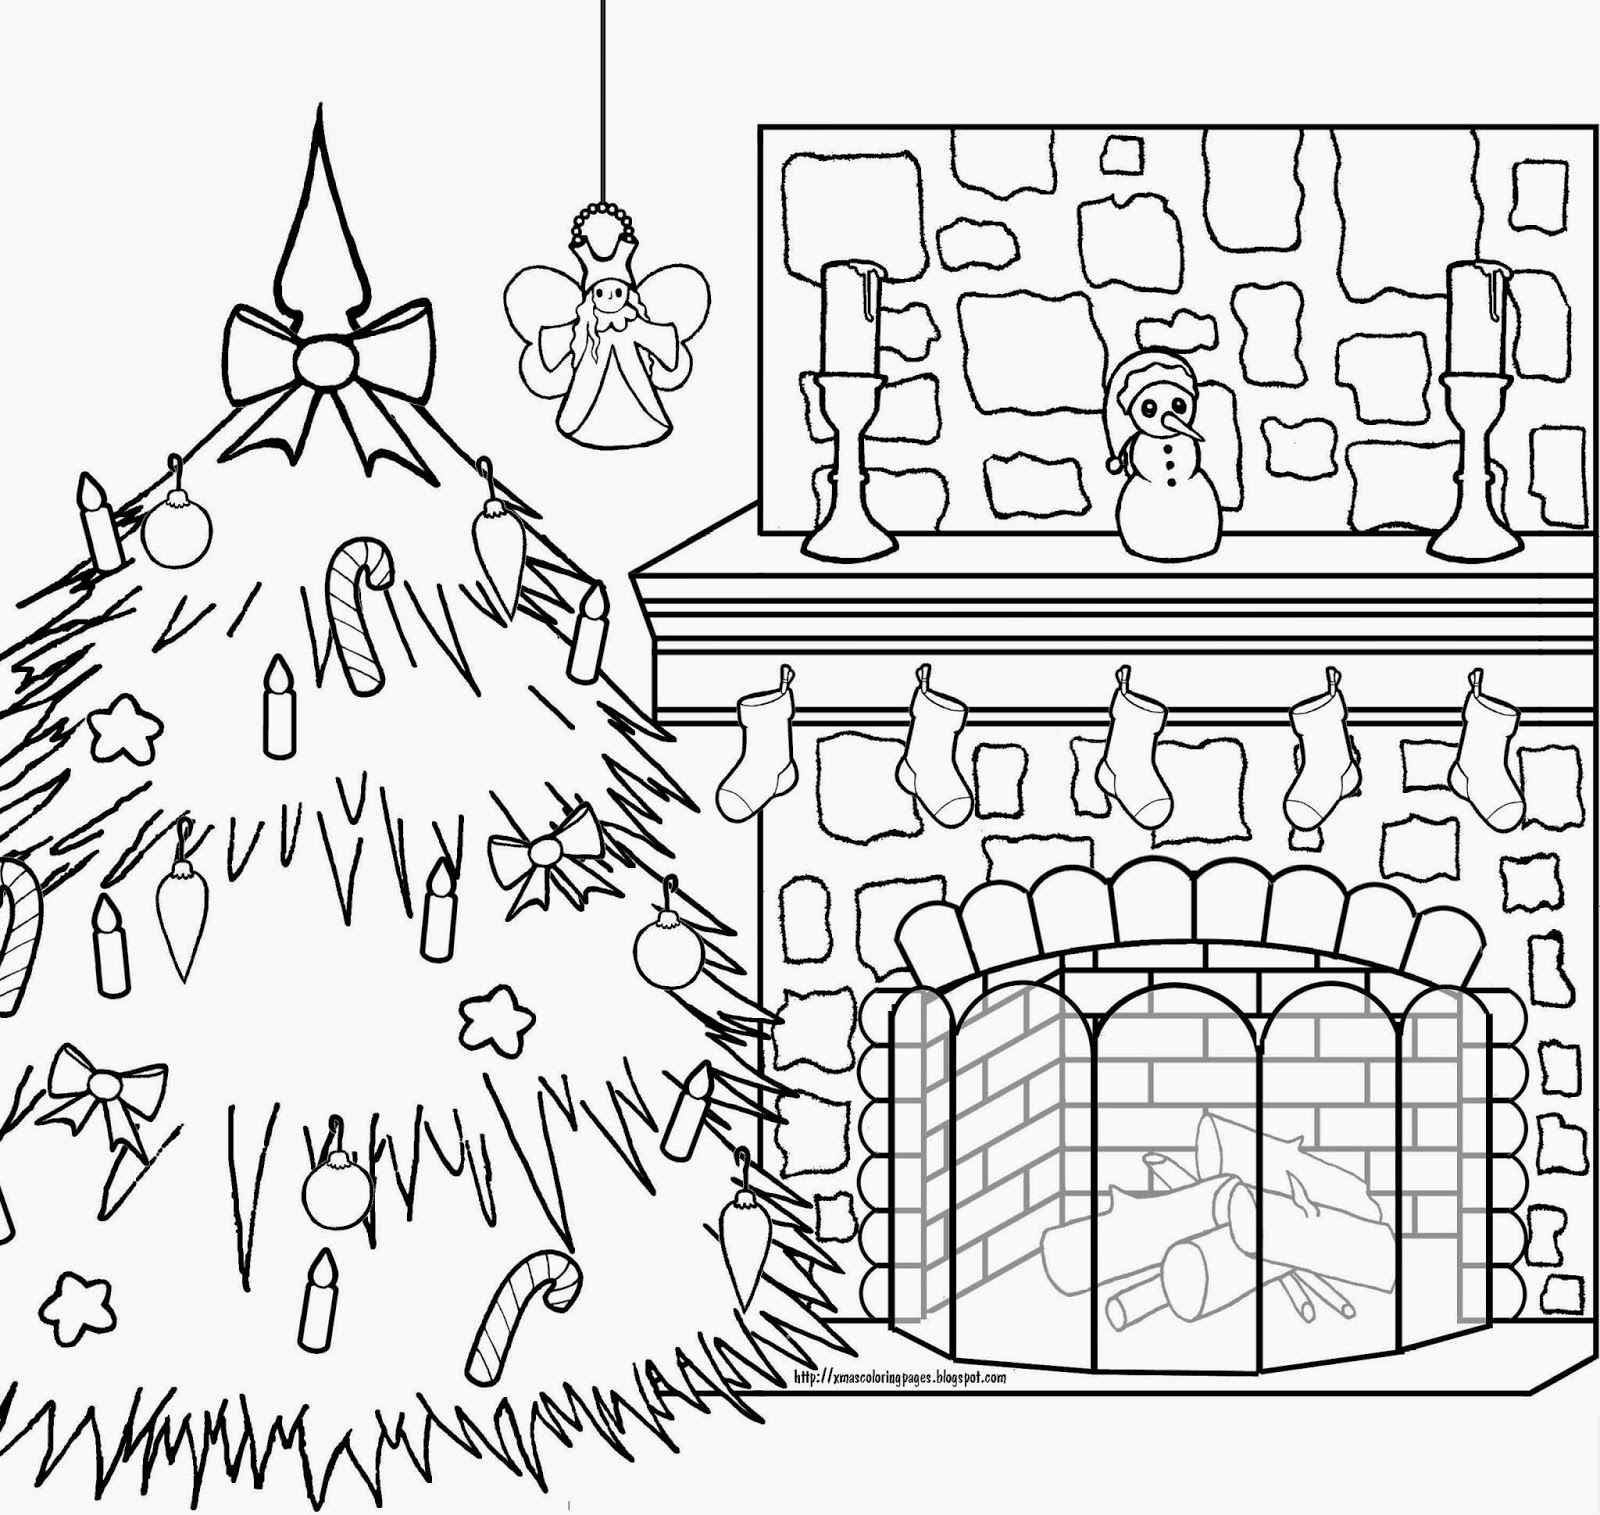 1600x1515 Perspective Nativity Scene Coloring Pages Awes